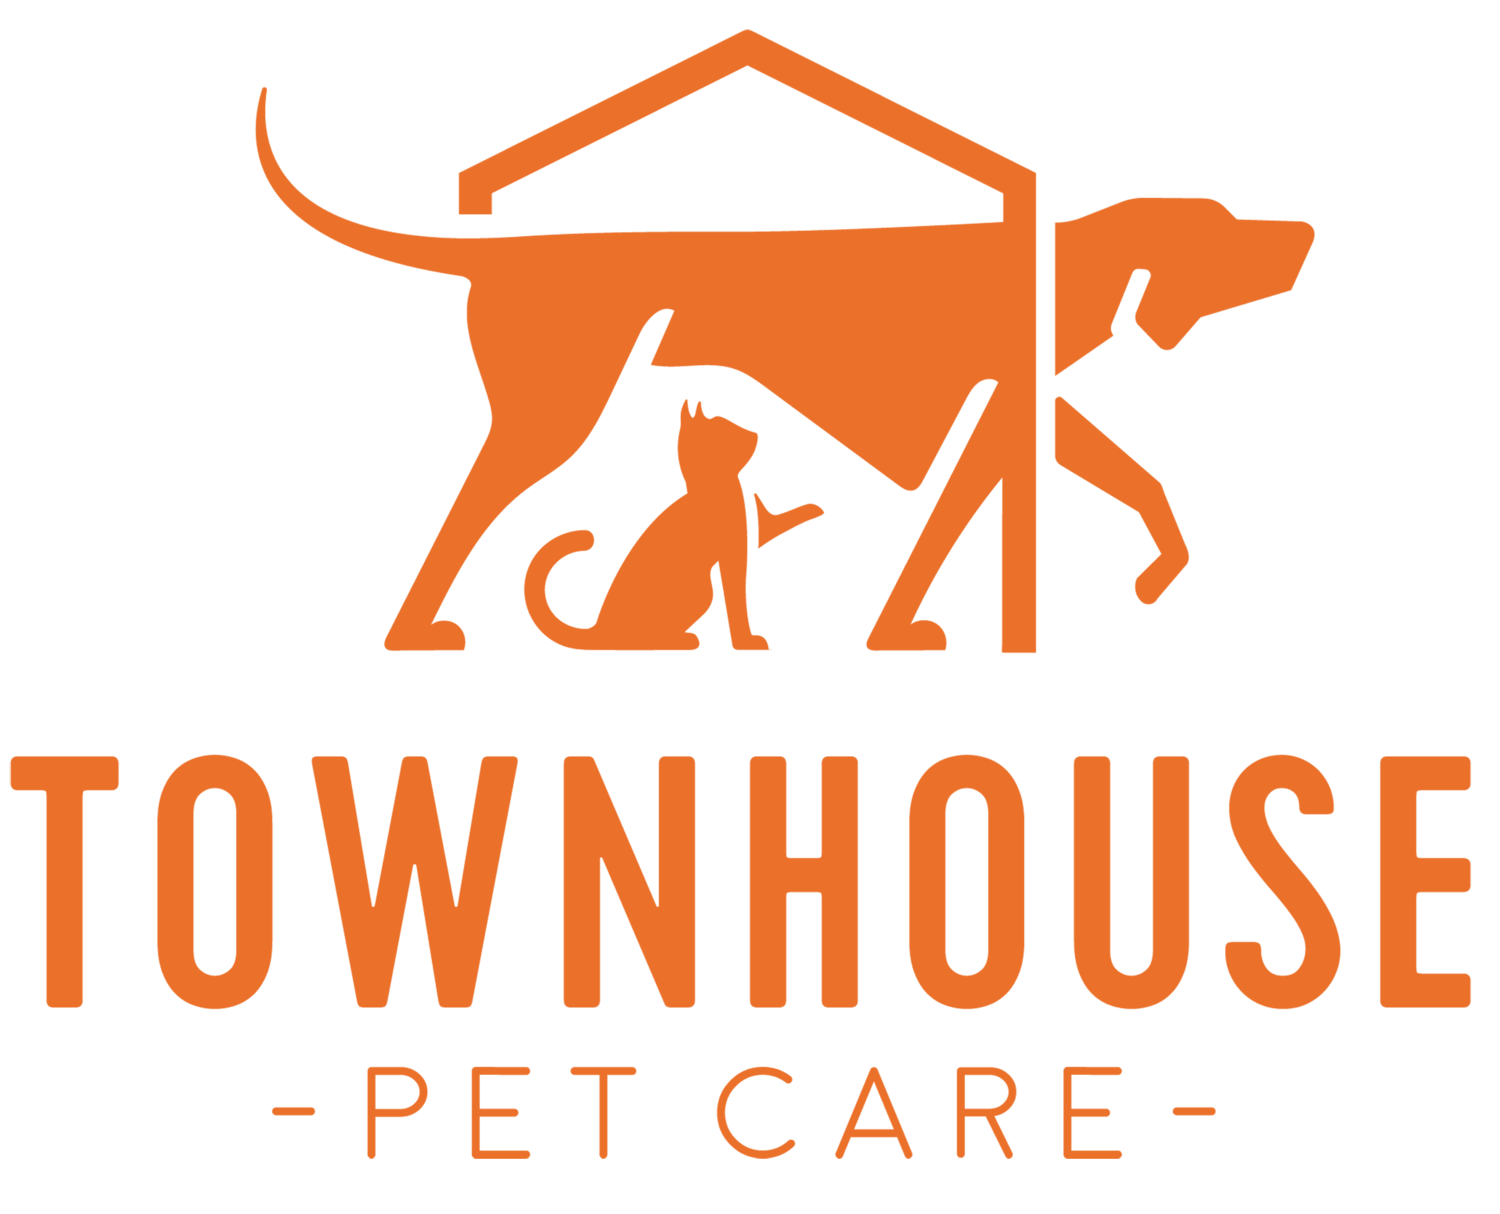 Townhouse Pet Care - Portland, OR